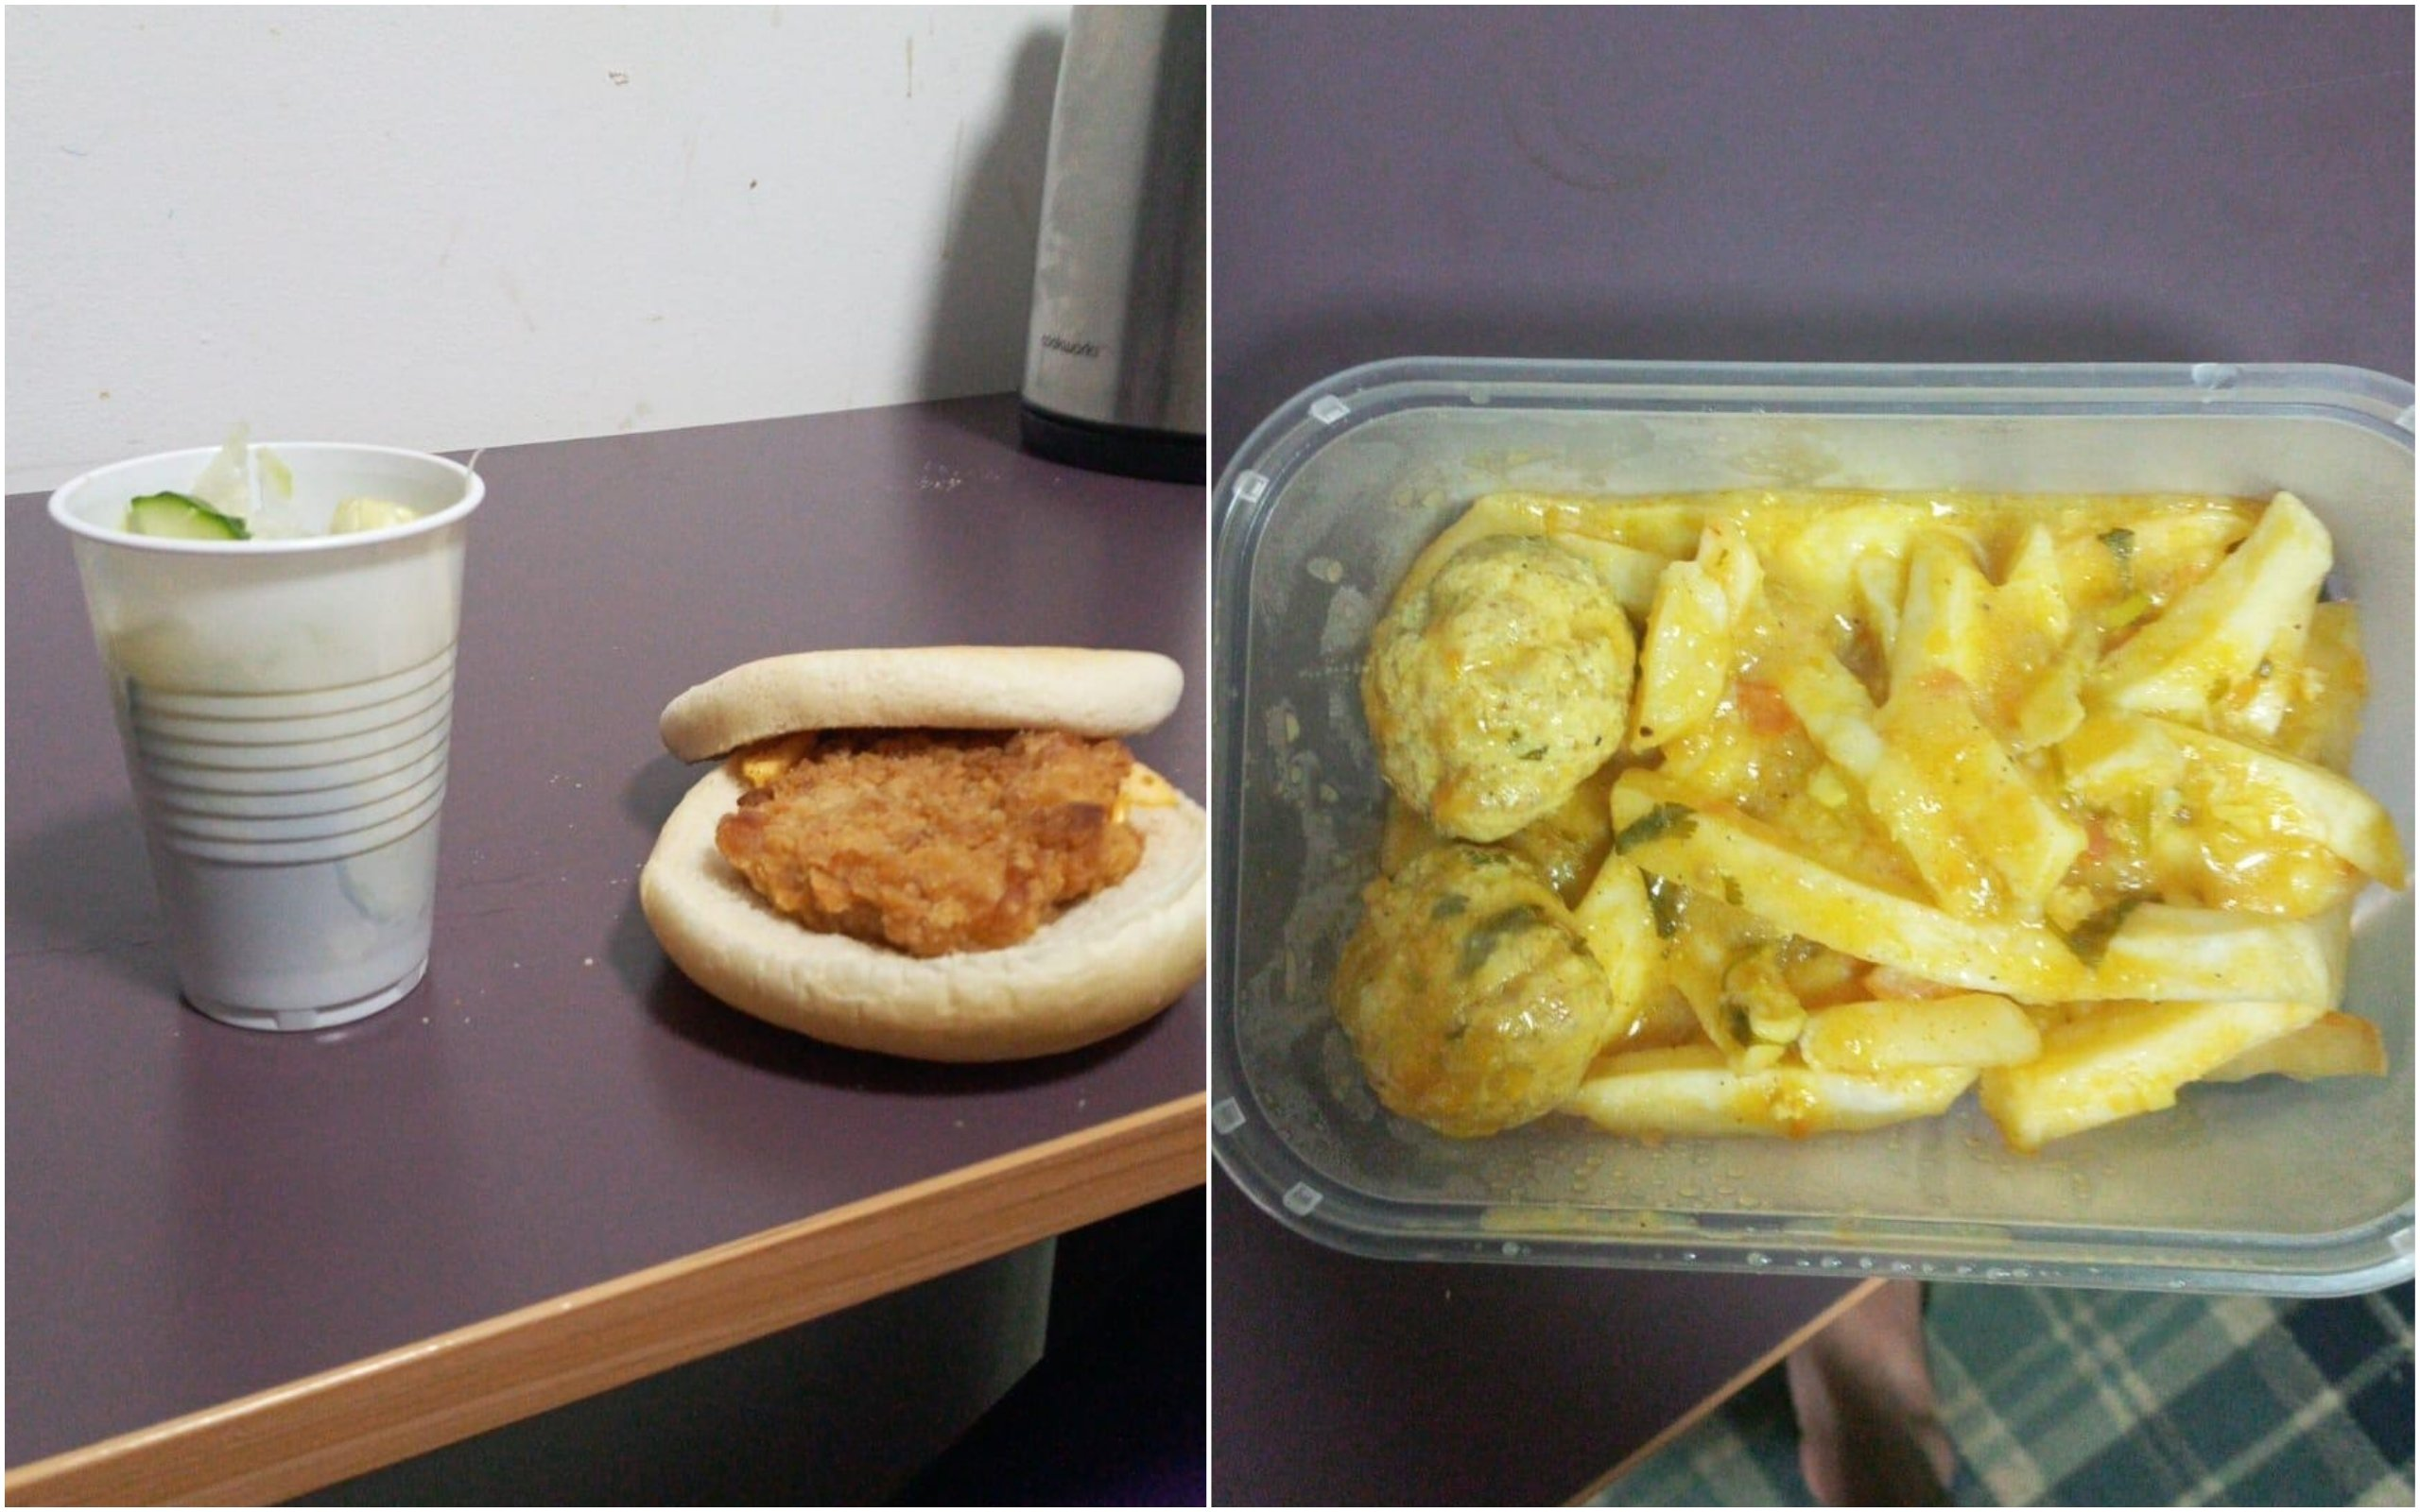 Asylum seekers in Glasgow 'malnourished with food not fit for human consumption'